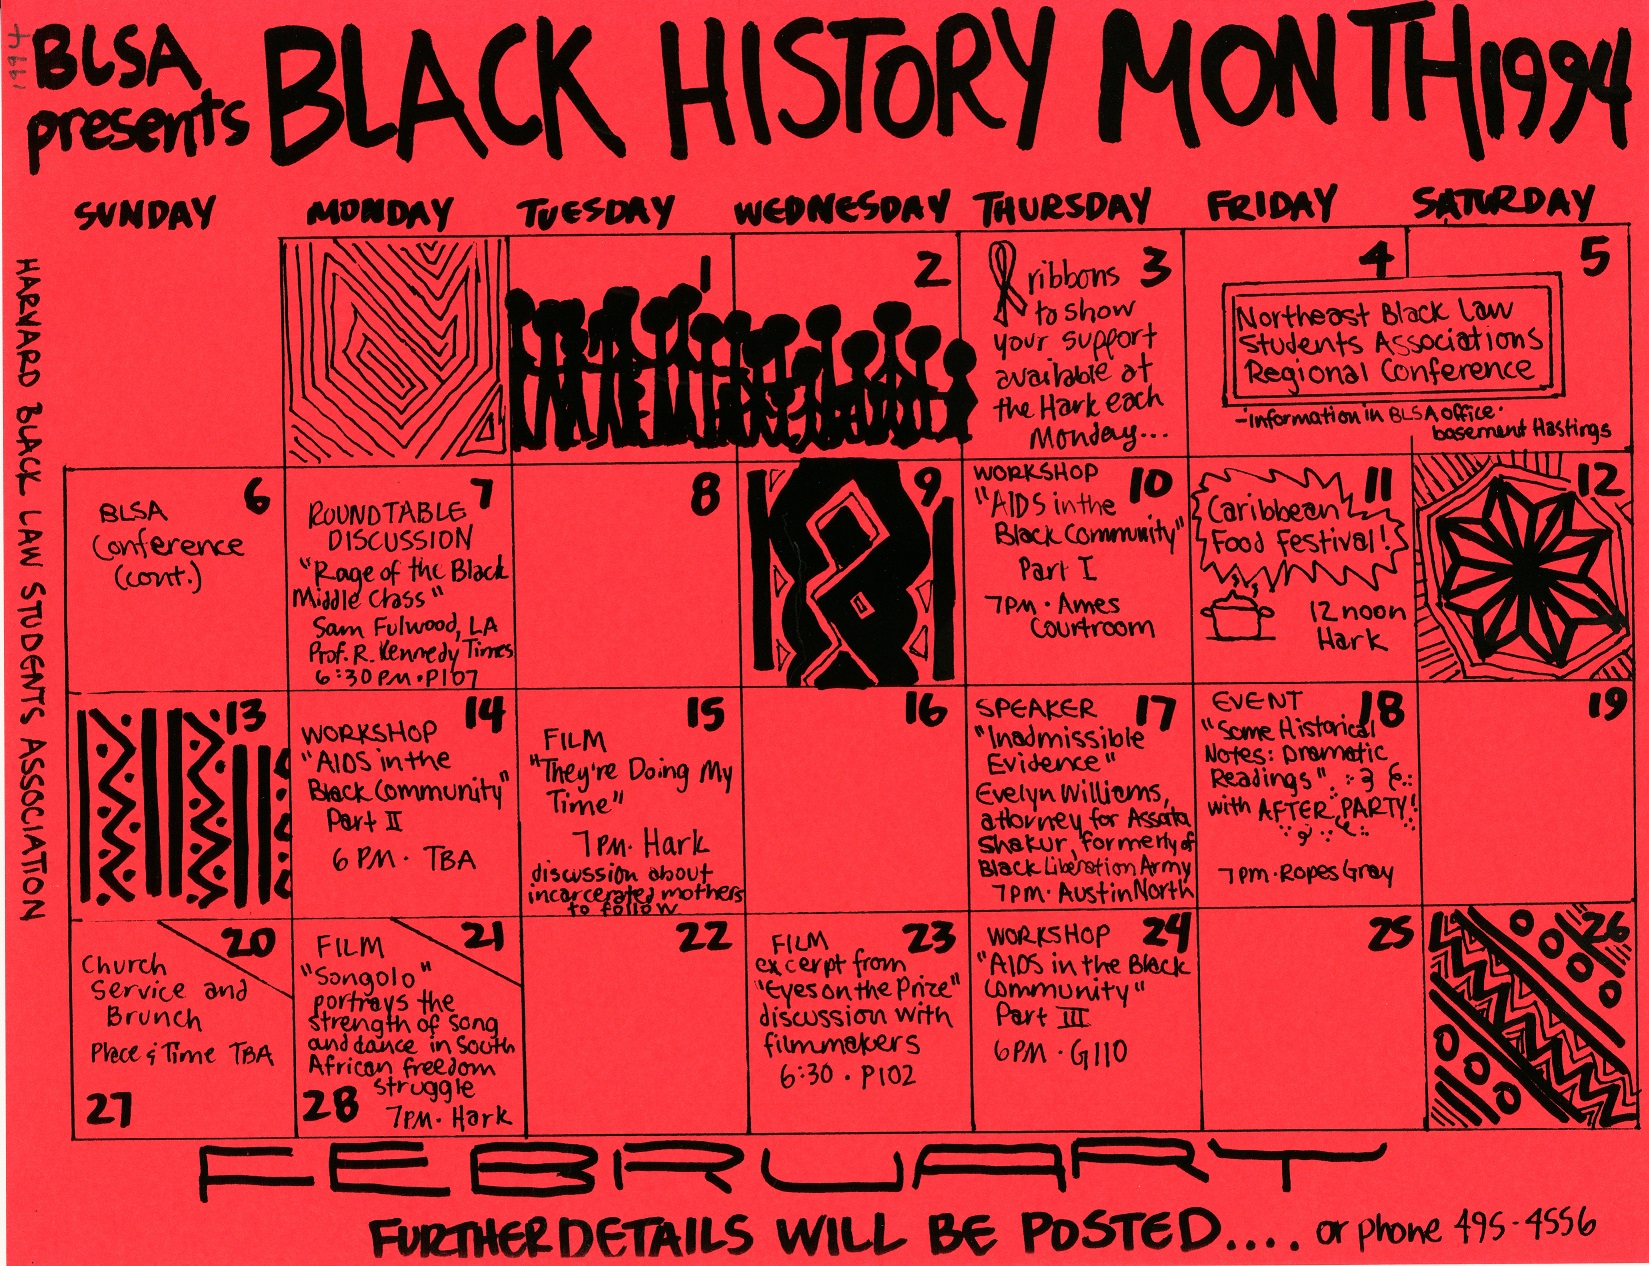 HLS Black Law Students Association Black History Month Event Calendar, 1994